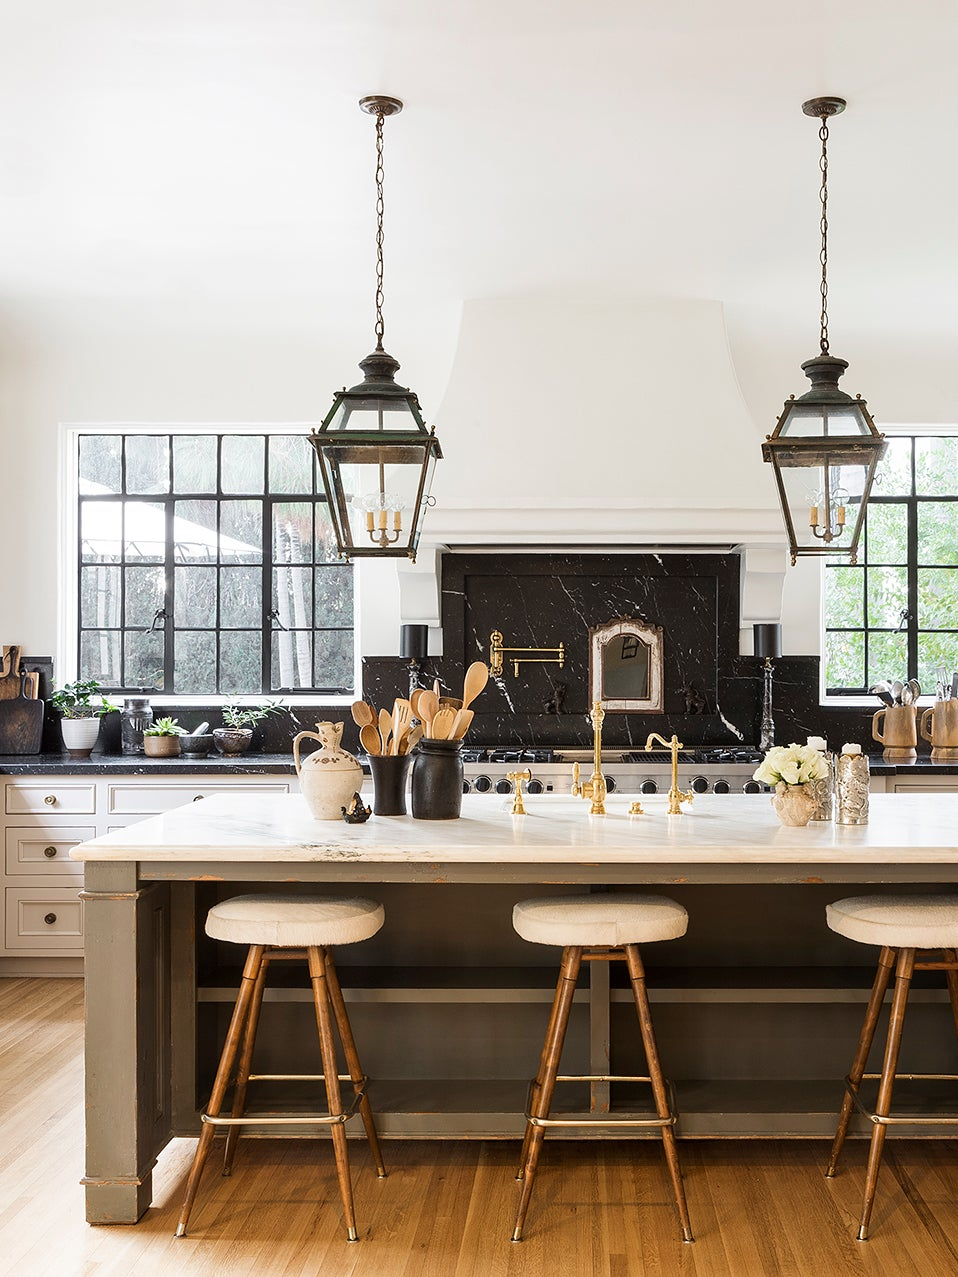 The Kitchen Trend Nate Berkus Says Will Never Go Out of Style